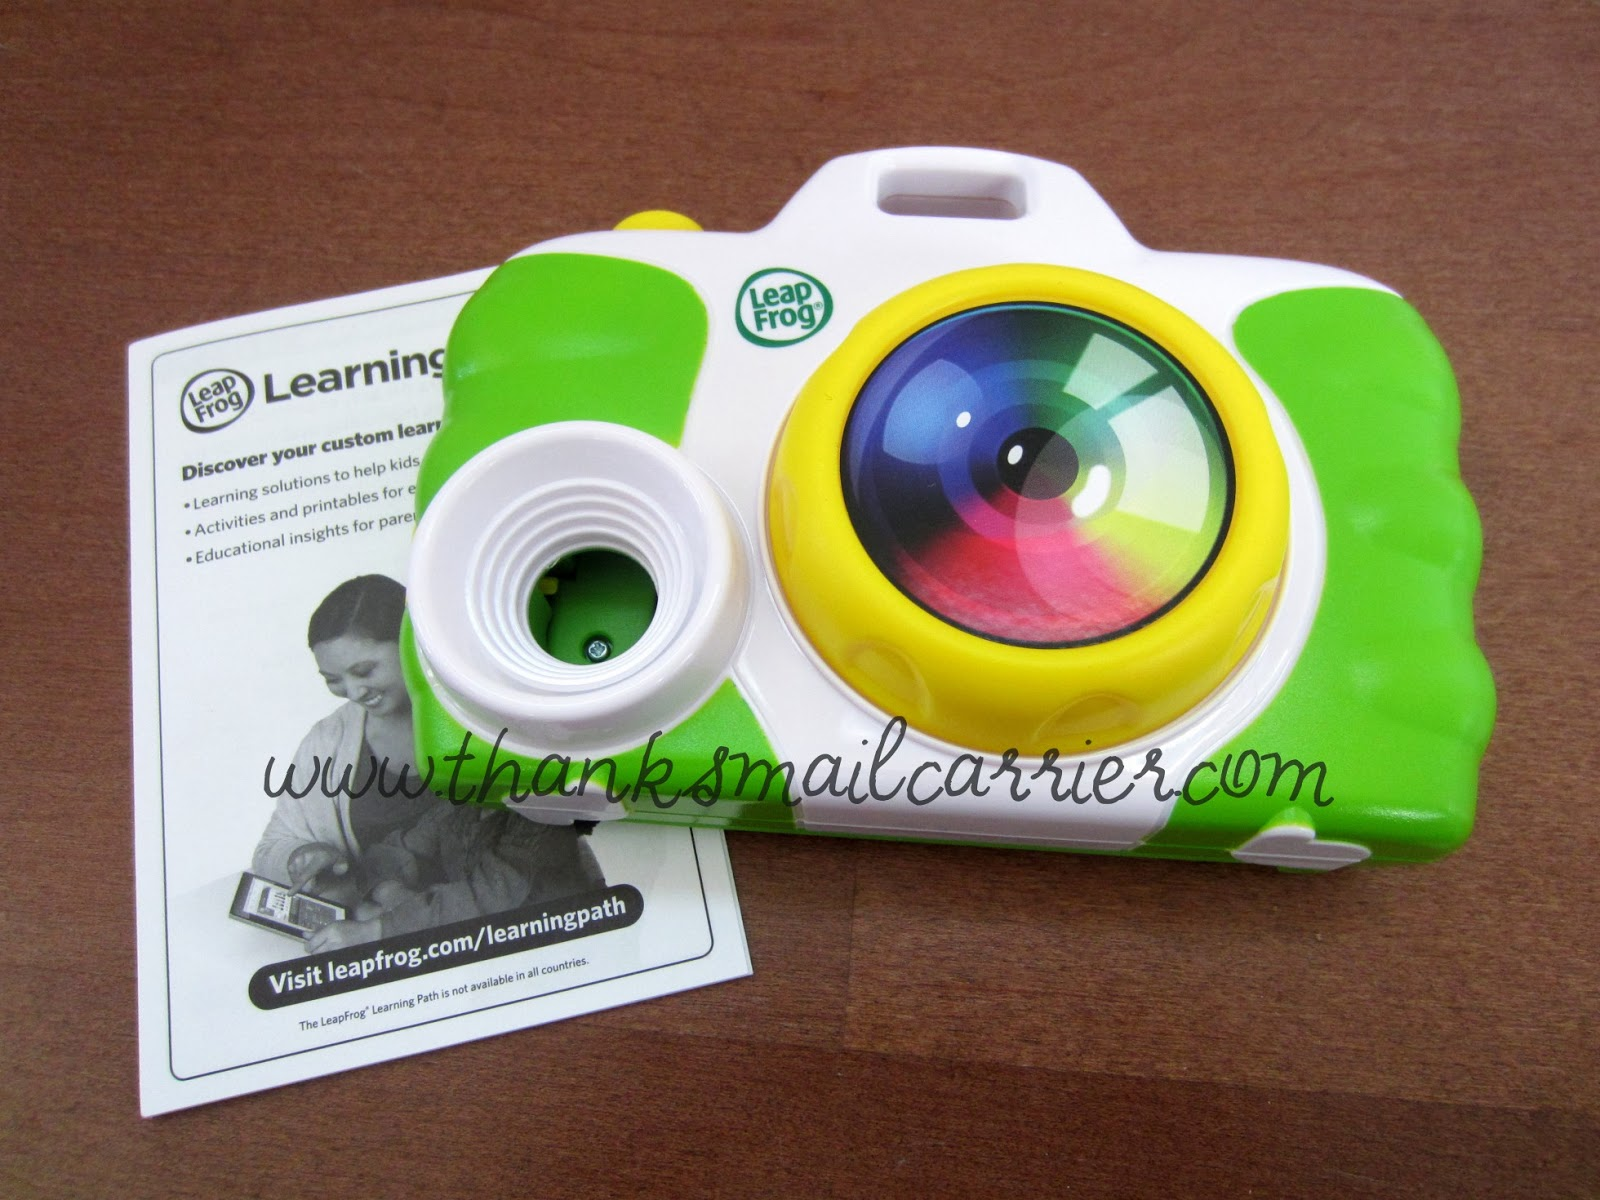 LeapFrog creativity camera